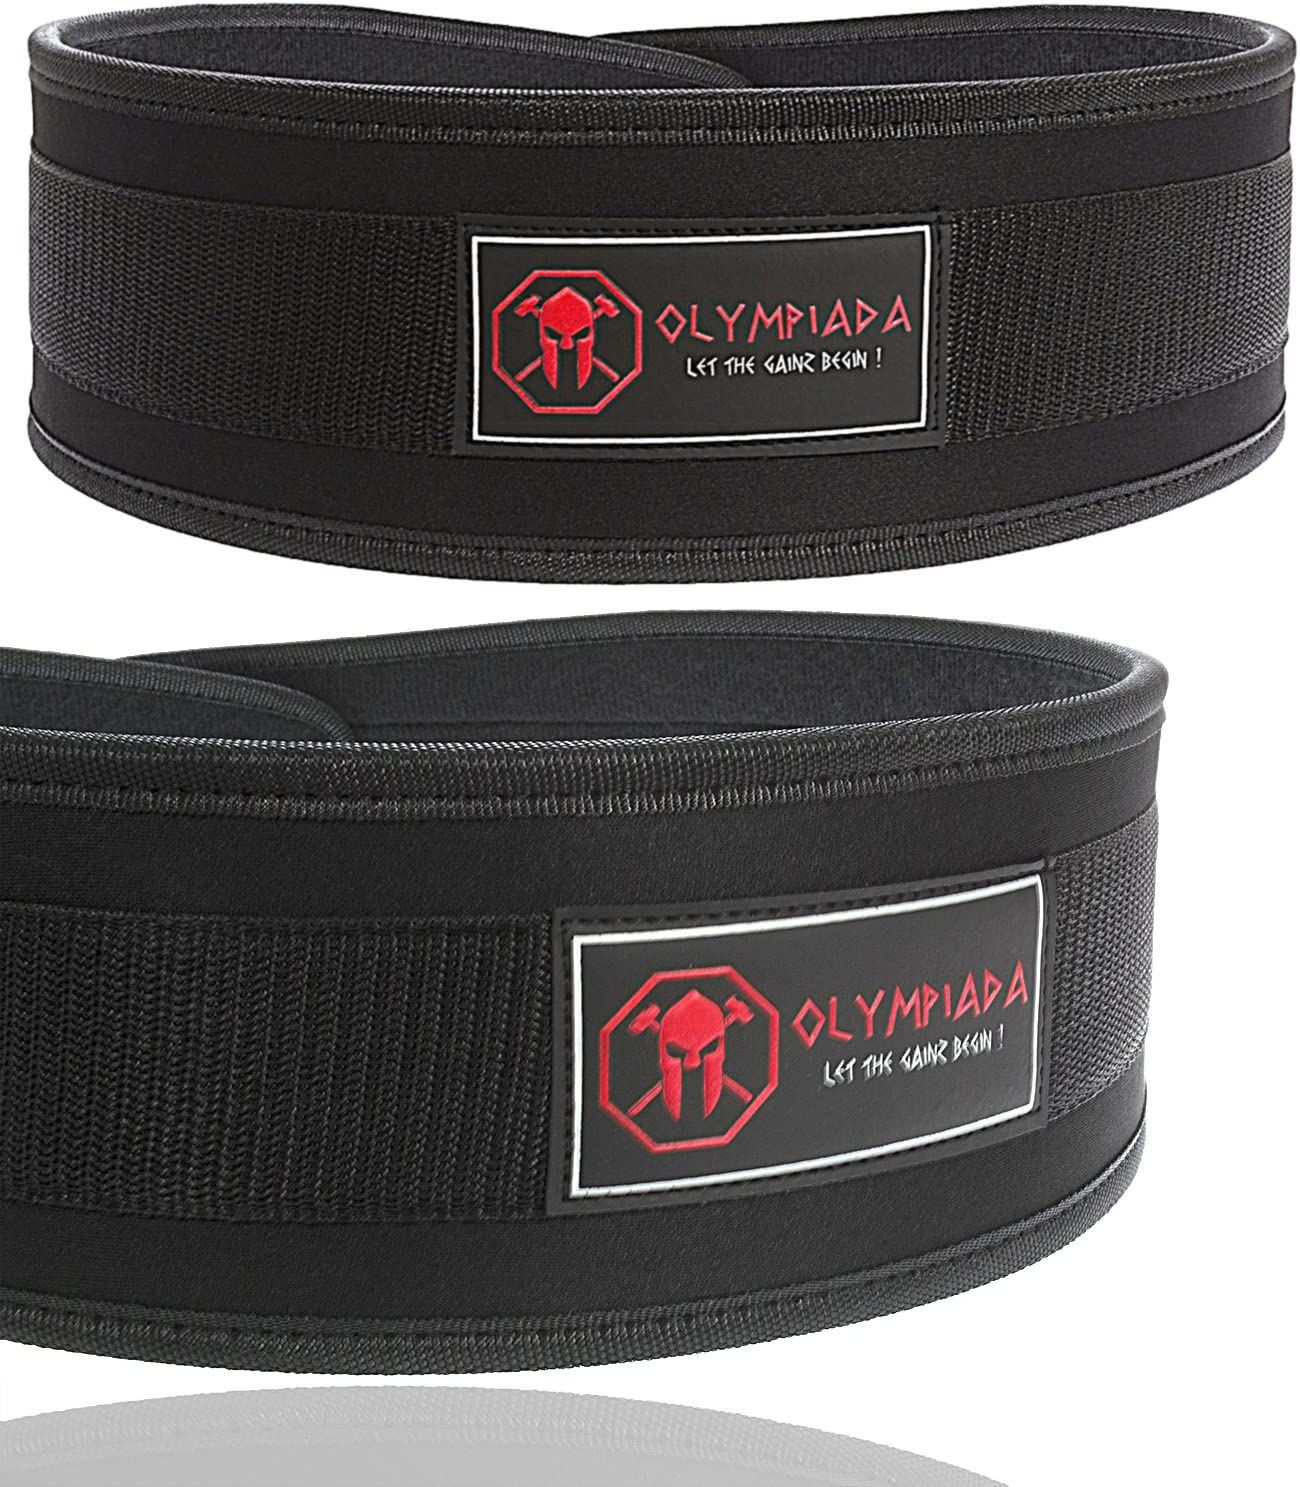 """Olympiada Low Profile Weight Lifting Belt 4""""-6"""" Black - for Weightlifting, Gym, Crossfit, Olympic Lifting and Fitness - Safely Support and Protect Your Back from Injury"""